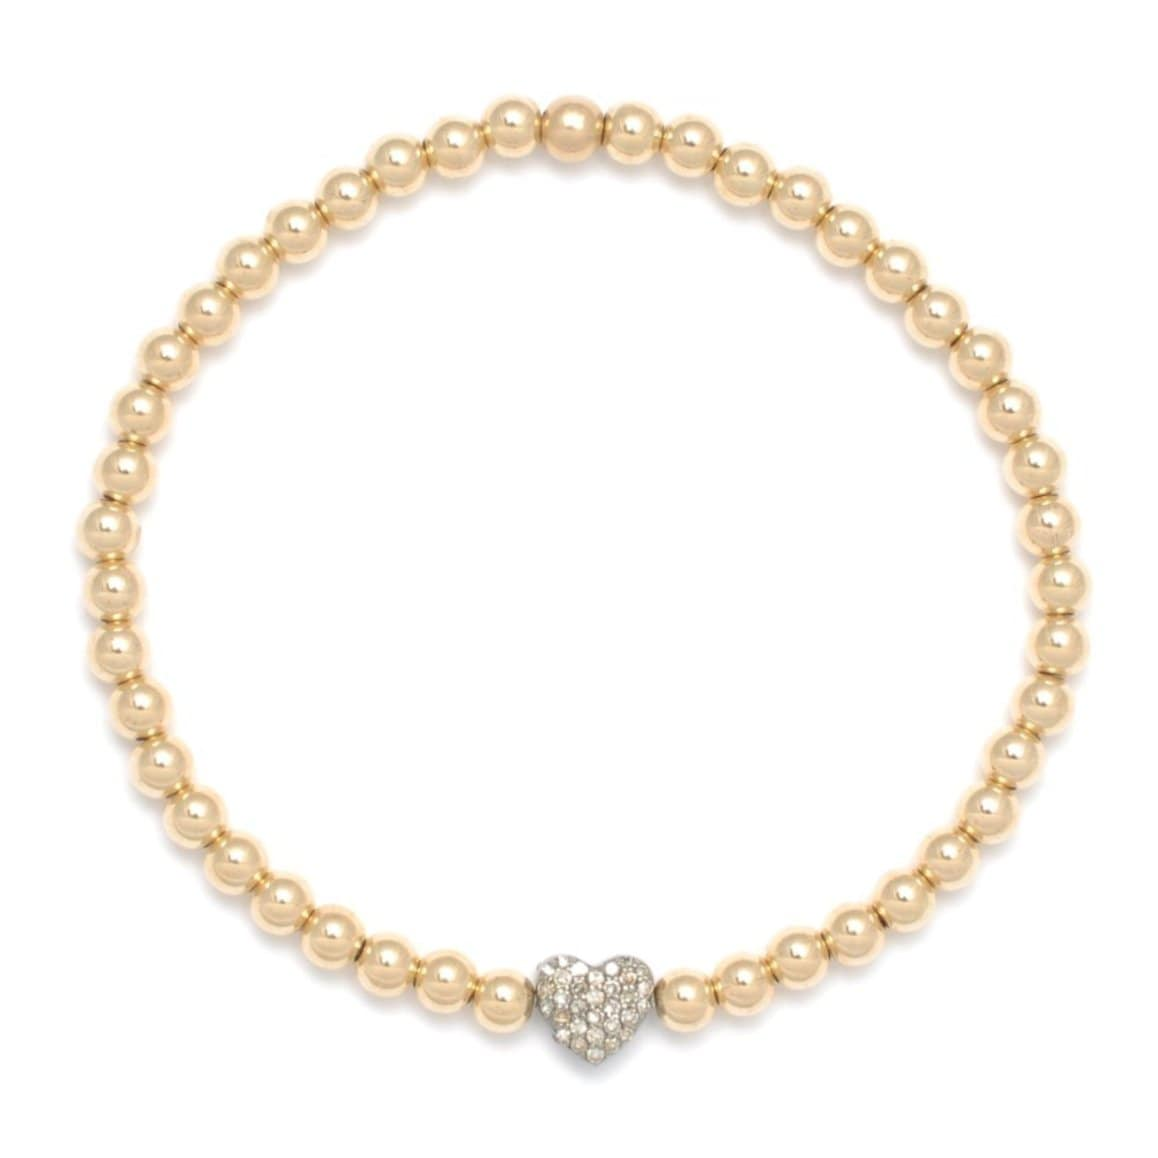 Diamond Heart Oxidized Yellow Gold Bead Bracelet